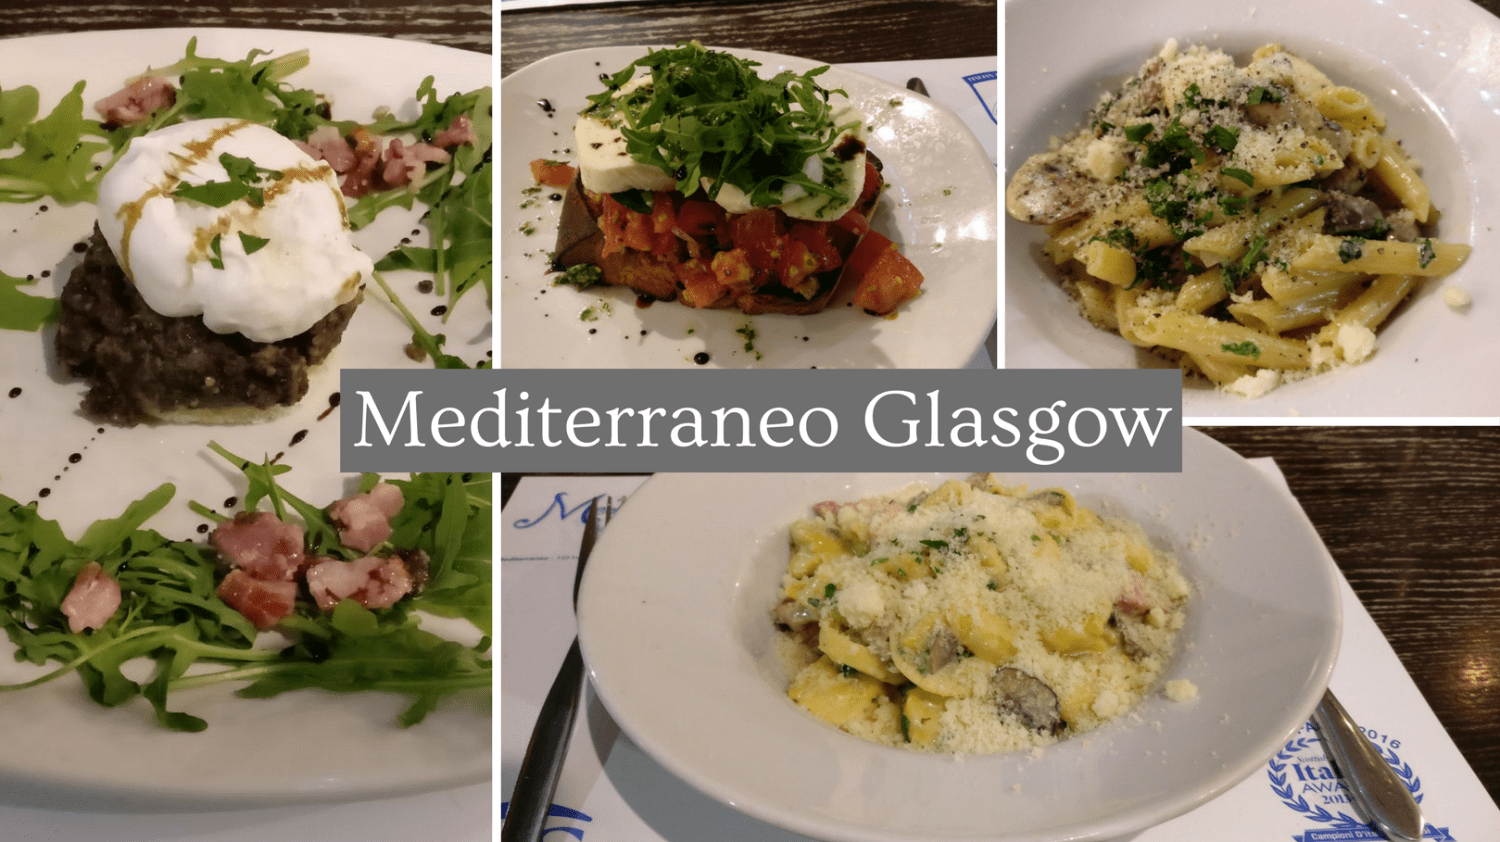 Featured Image - Mediterraneo Glasgow